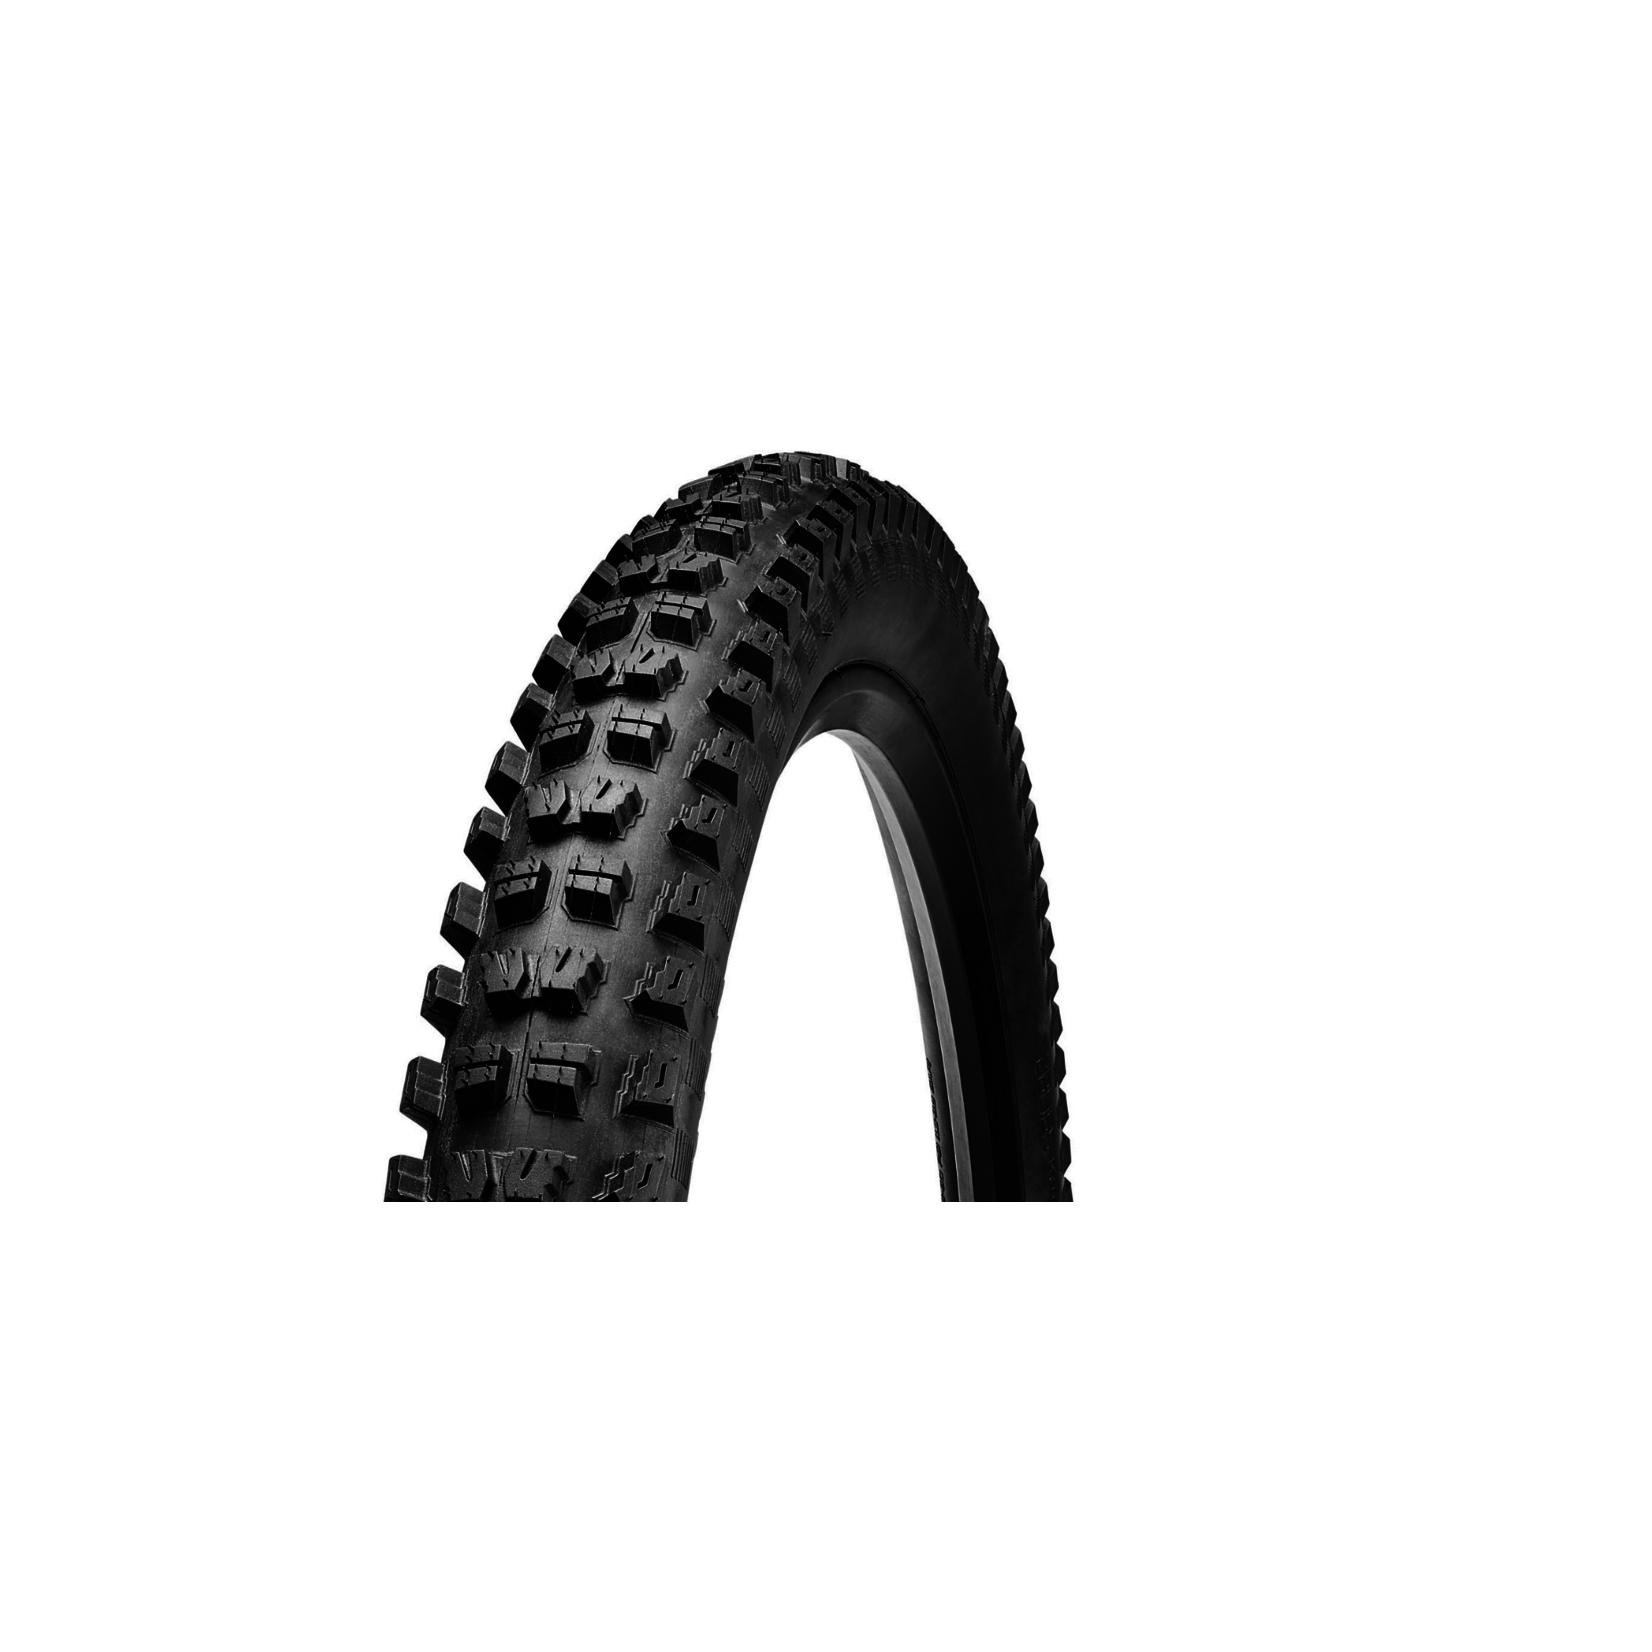 Specialized Specialized Butcher Control 2Bliss Ready Trail Folding Bead Tire, 29x2.3